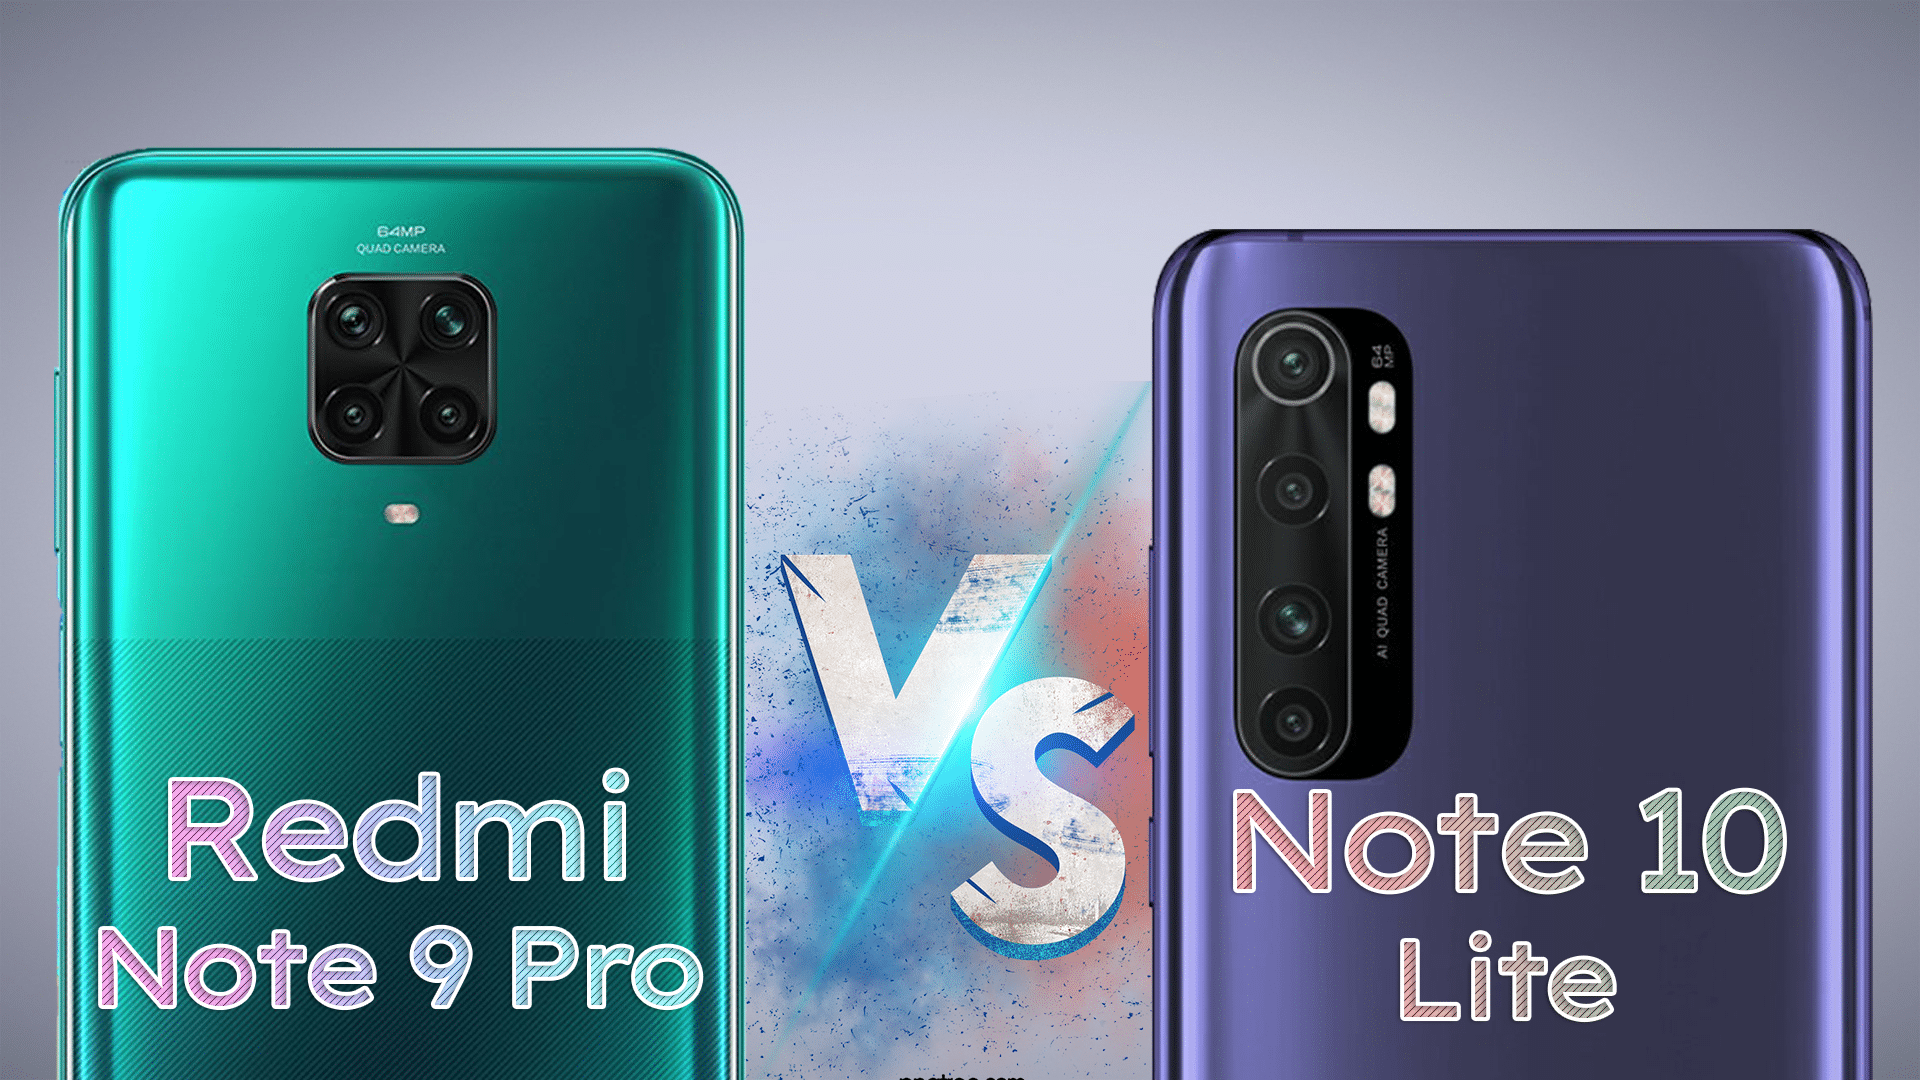 Xiaomi Redmi Note 9 Pro vs Xiaomi Mi Note 10 Lite Camera Comparison